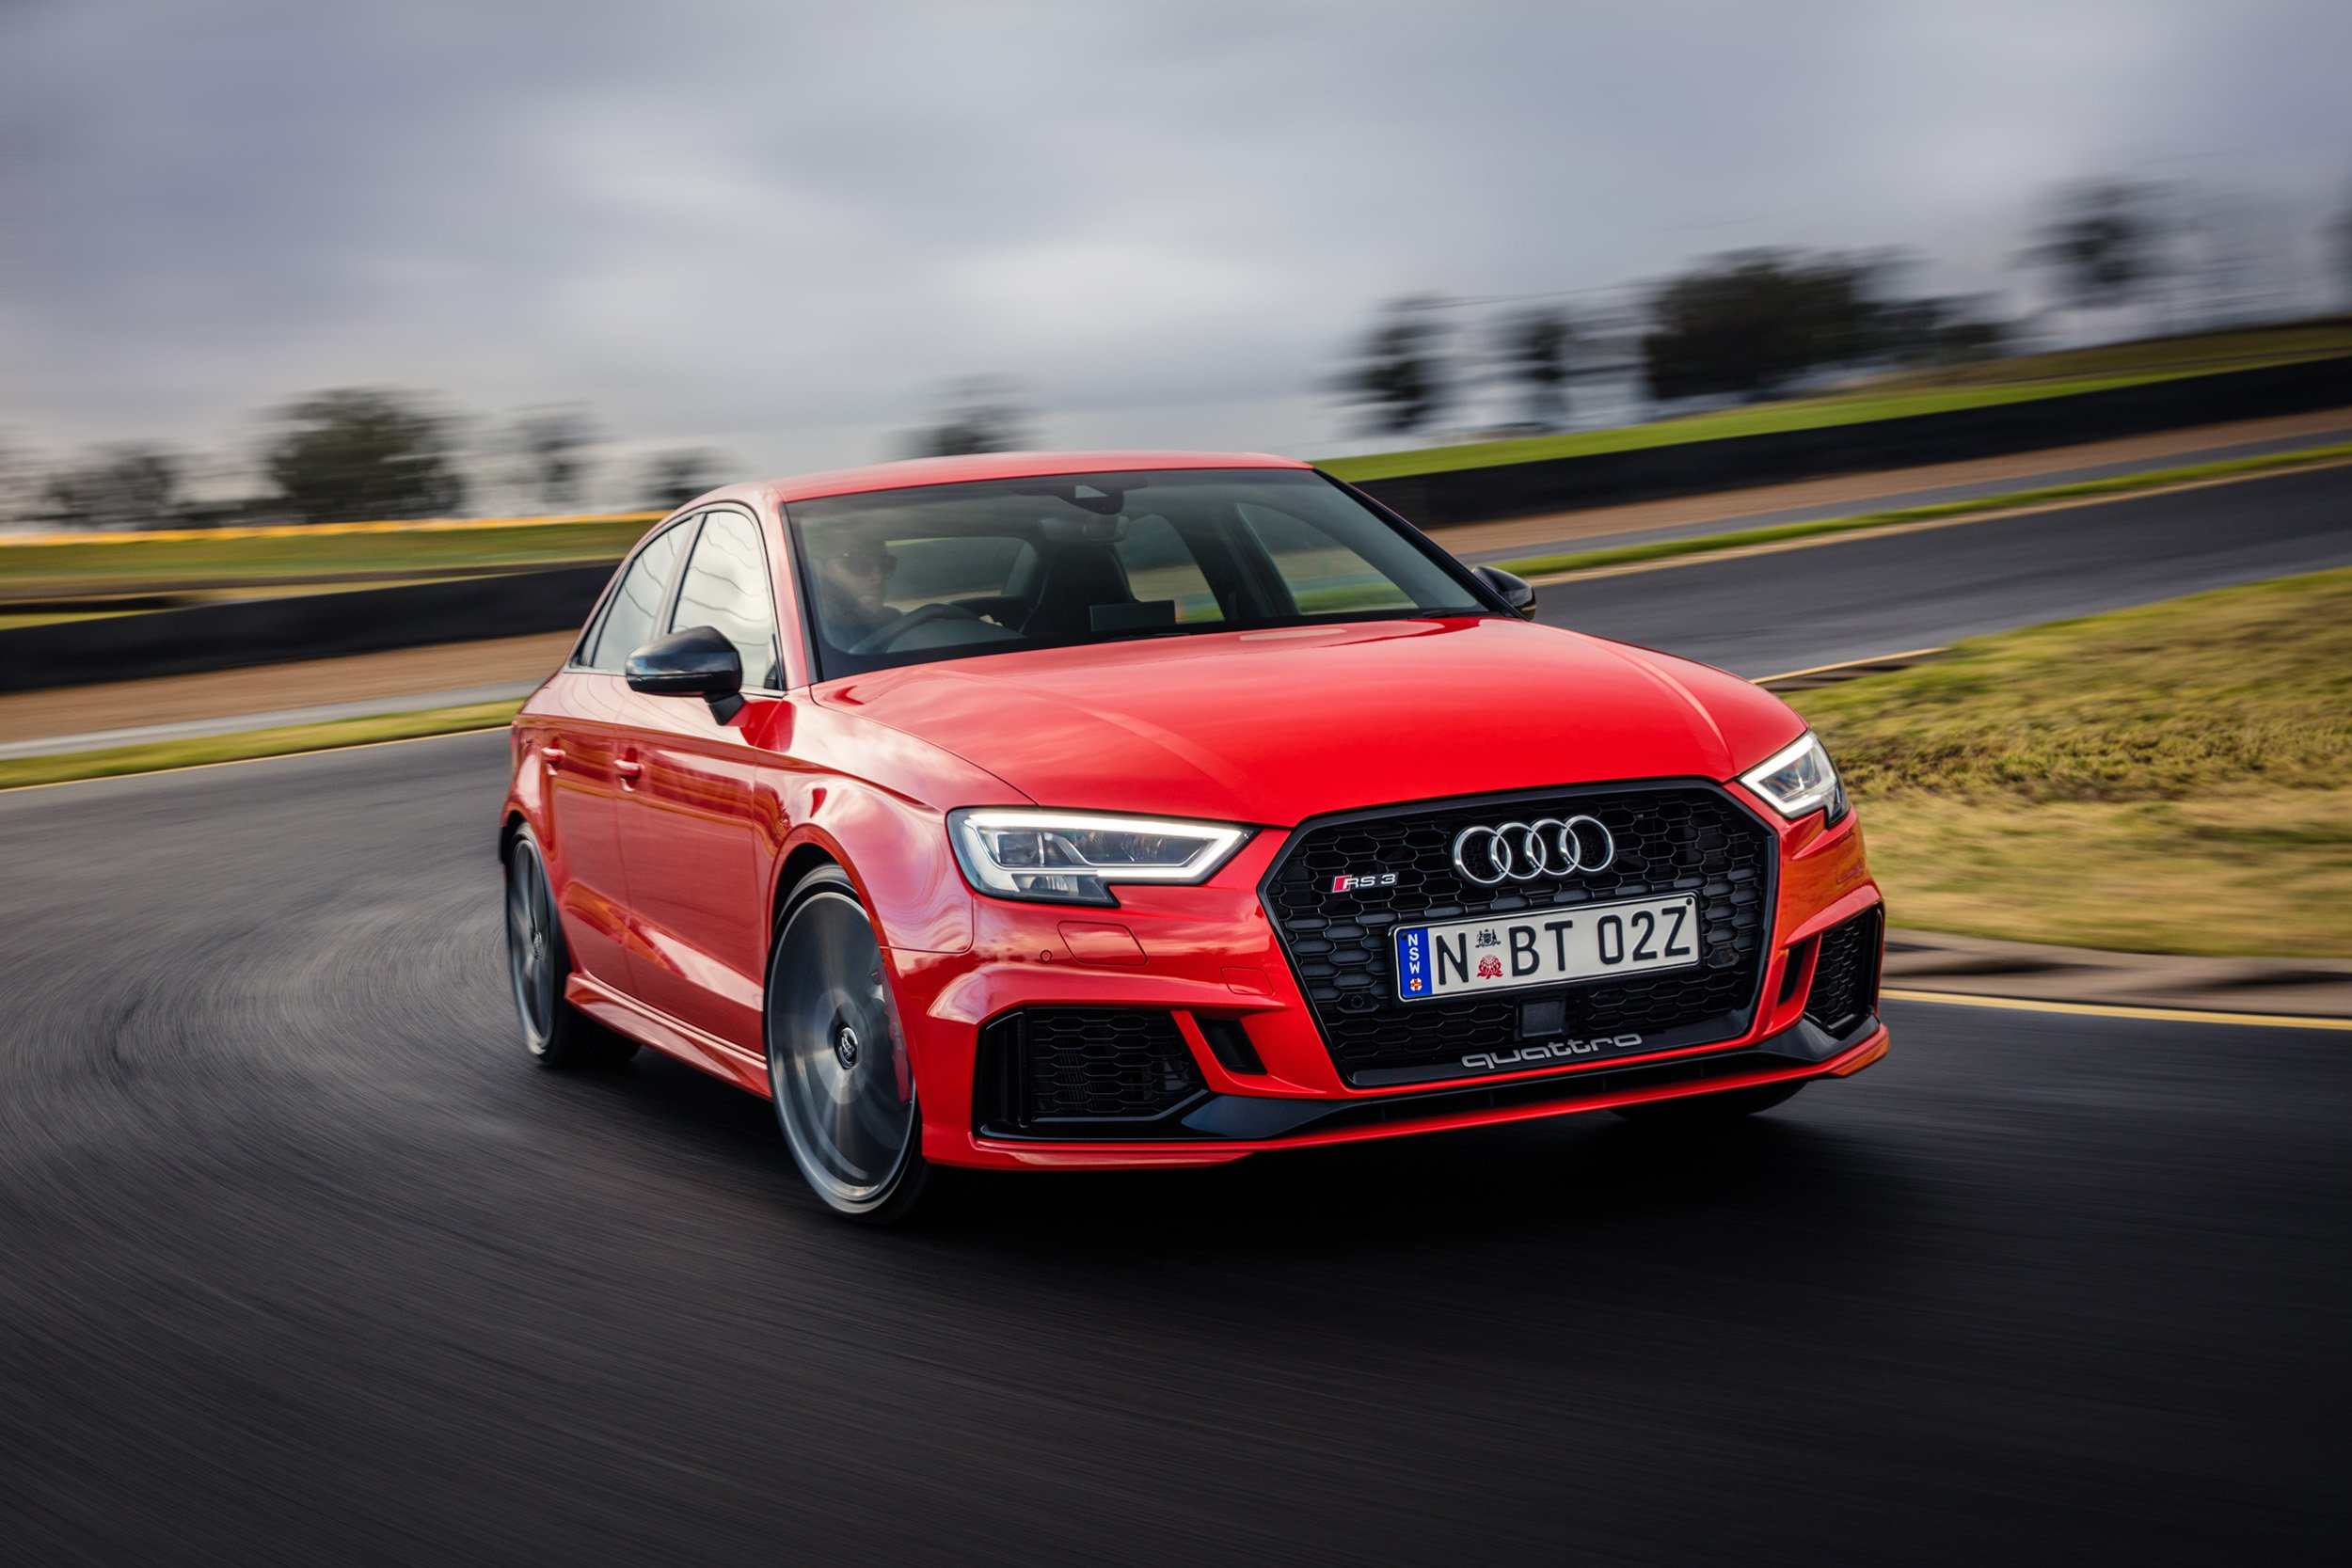 2017 Audi Rs3 Sedan Pricing And Specs Update Caradvice